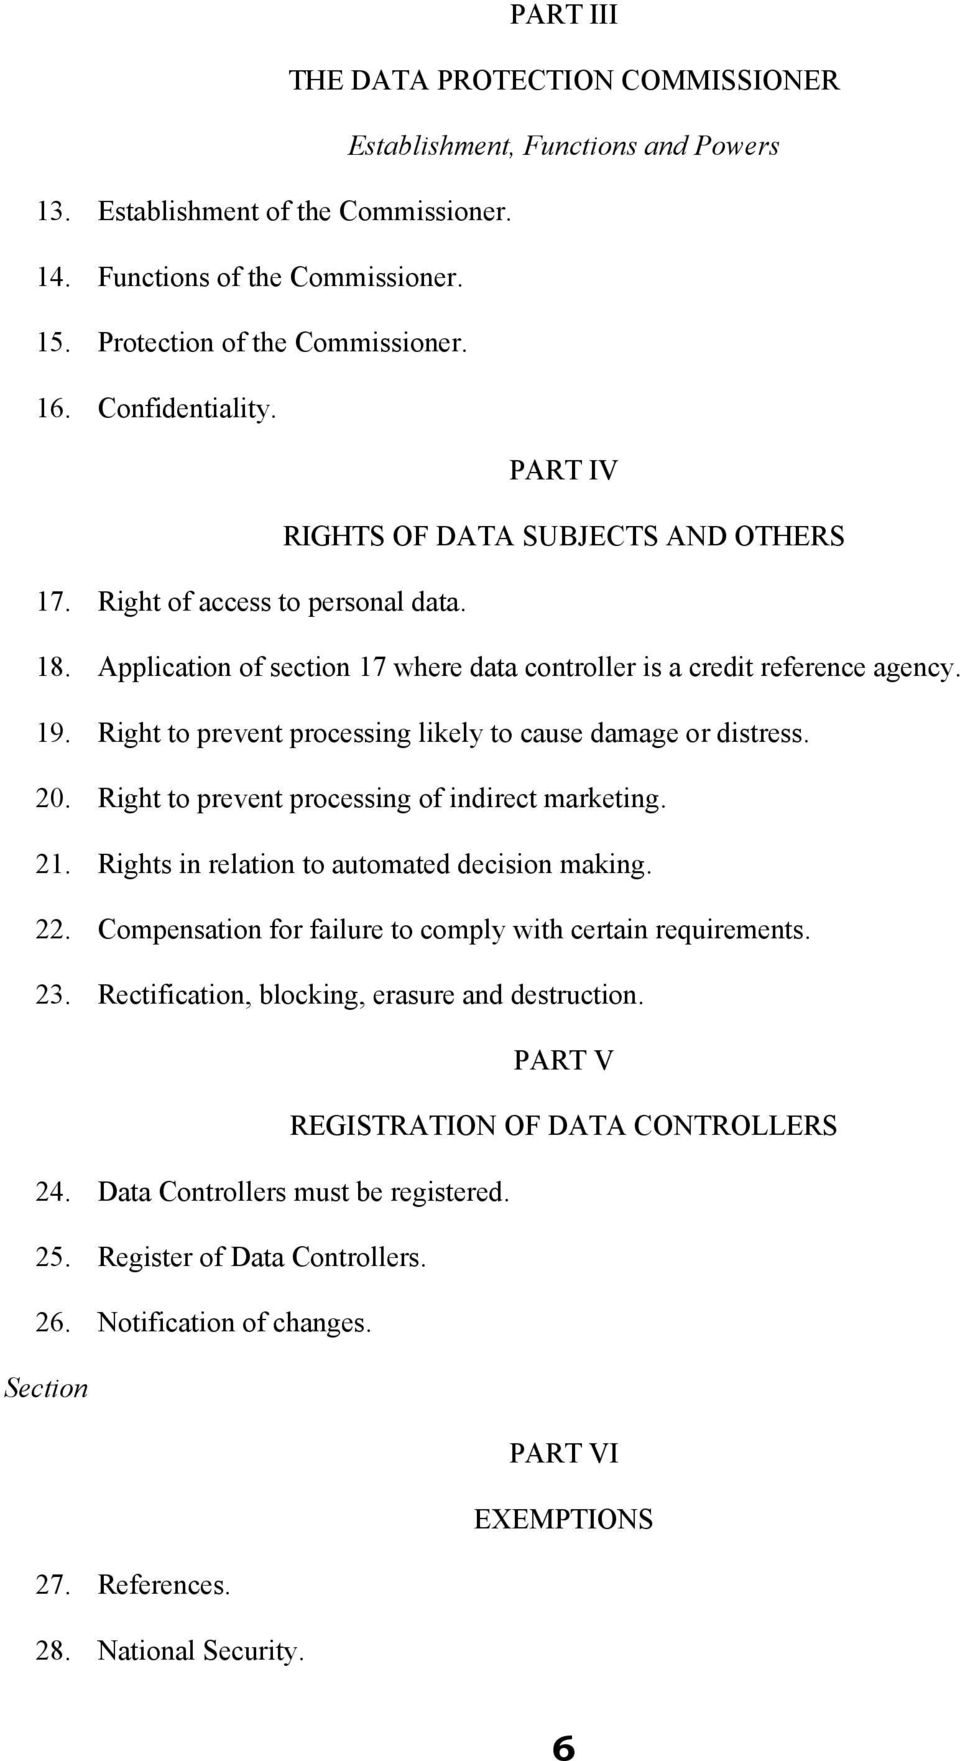 Right to prevent processing likely to cause damage or distress. 20. Right to prevent processing of indirect marketing. 21. Rights in relation to automated decision making. 22.